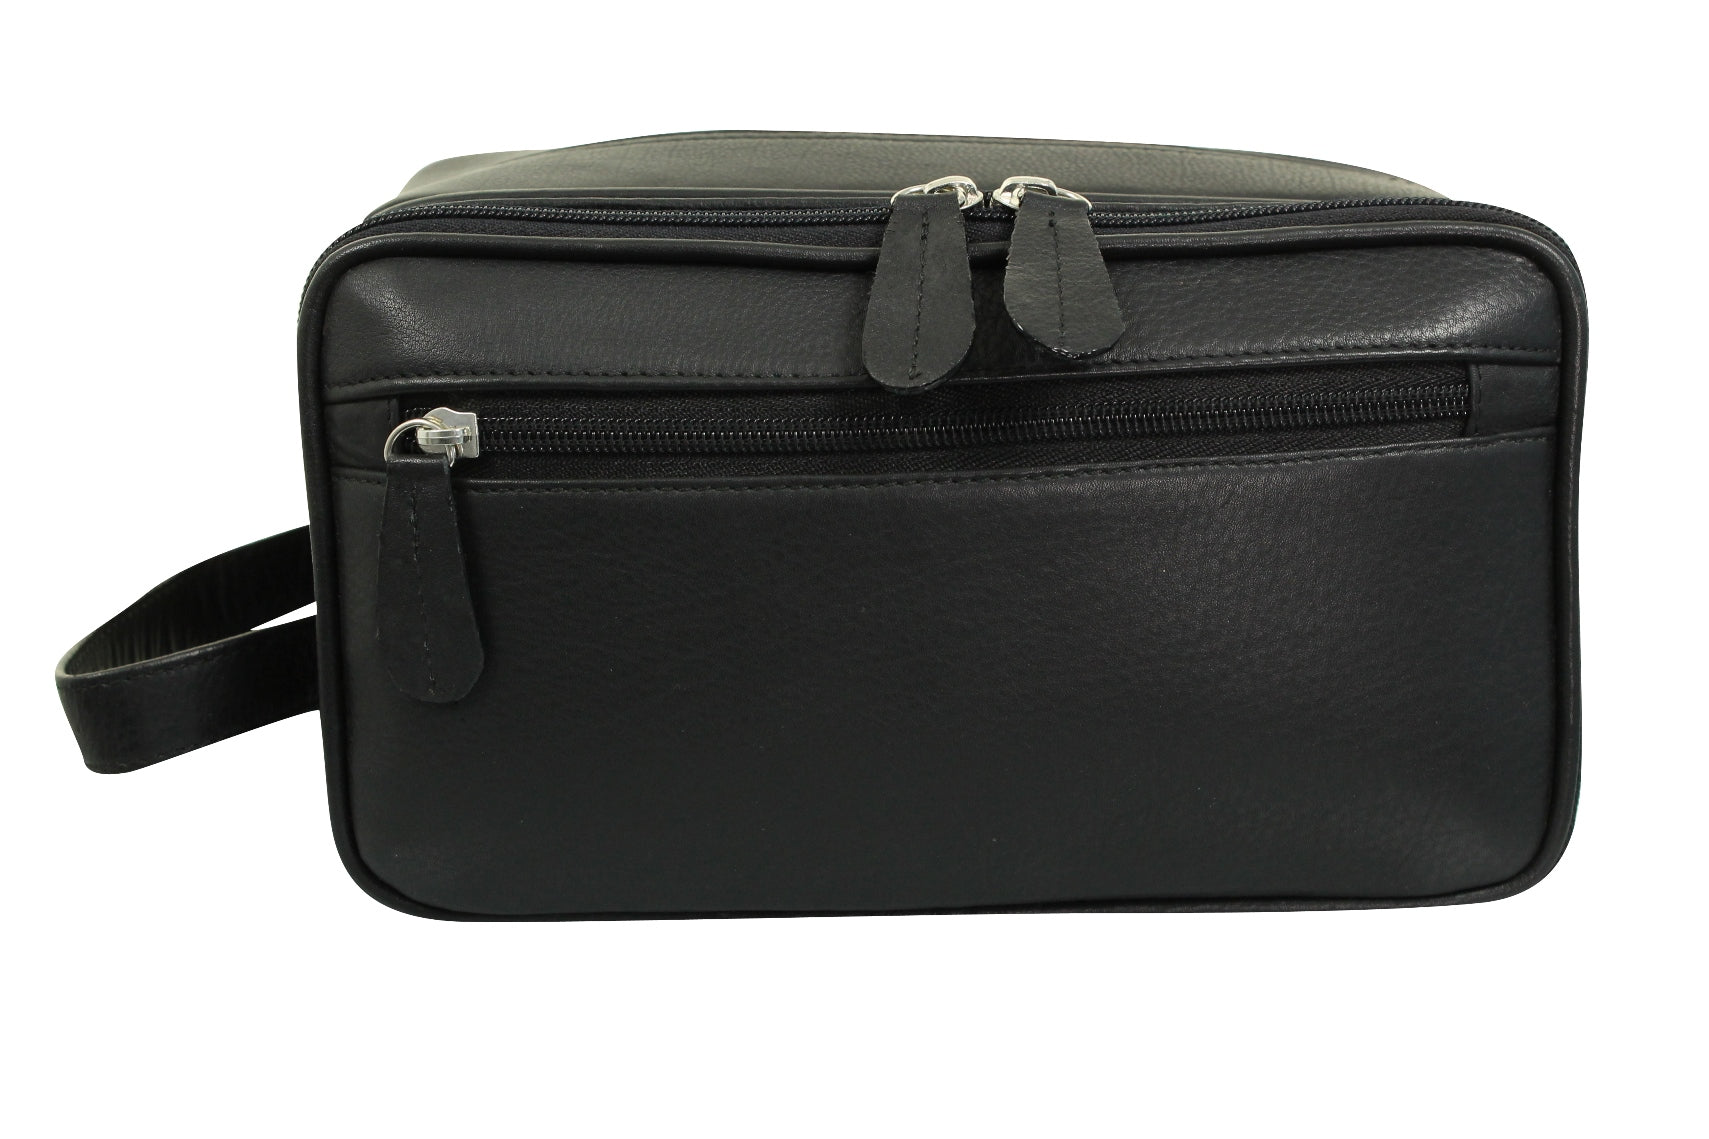 Real Leather Toiletry Wash Bag by Xact Clothing (Black)_01_20021